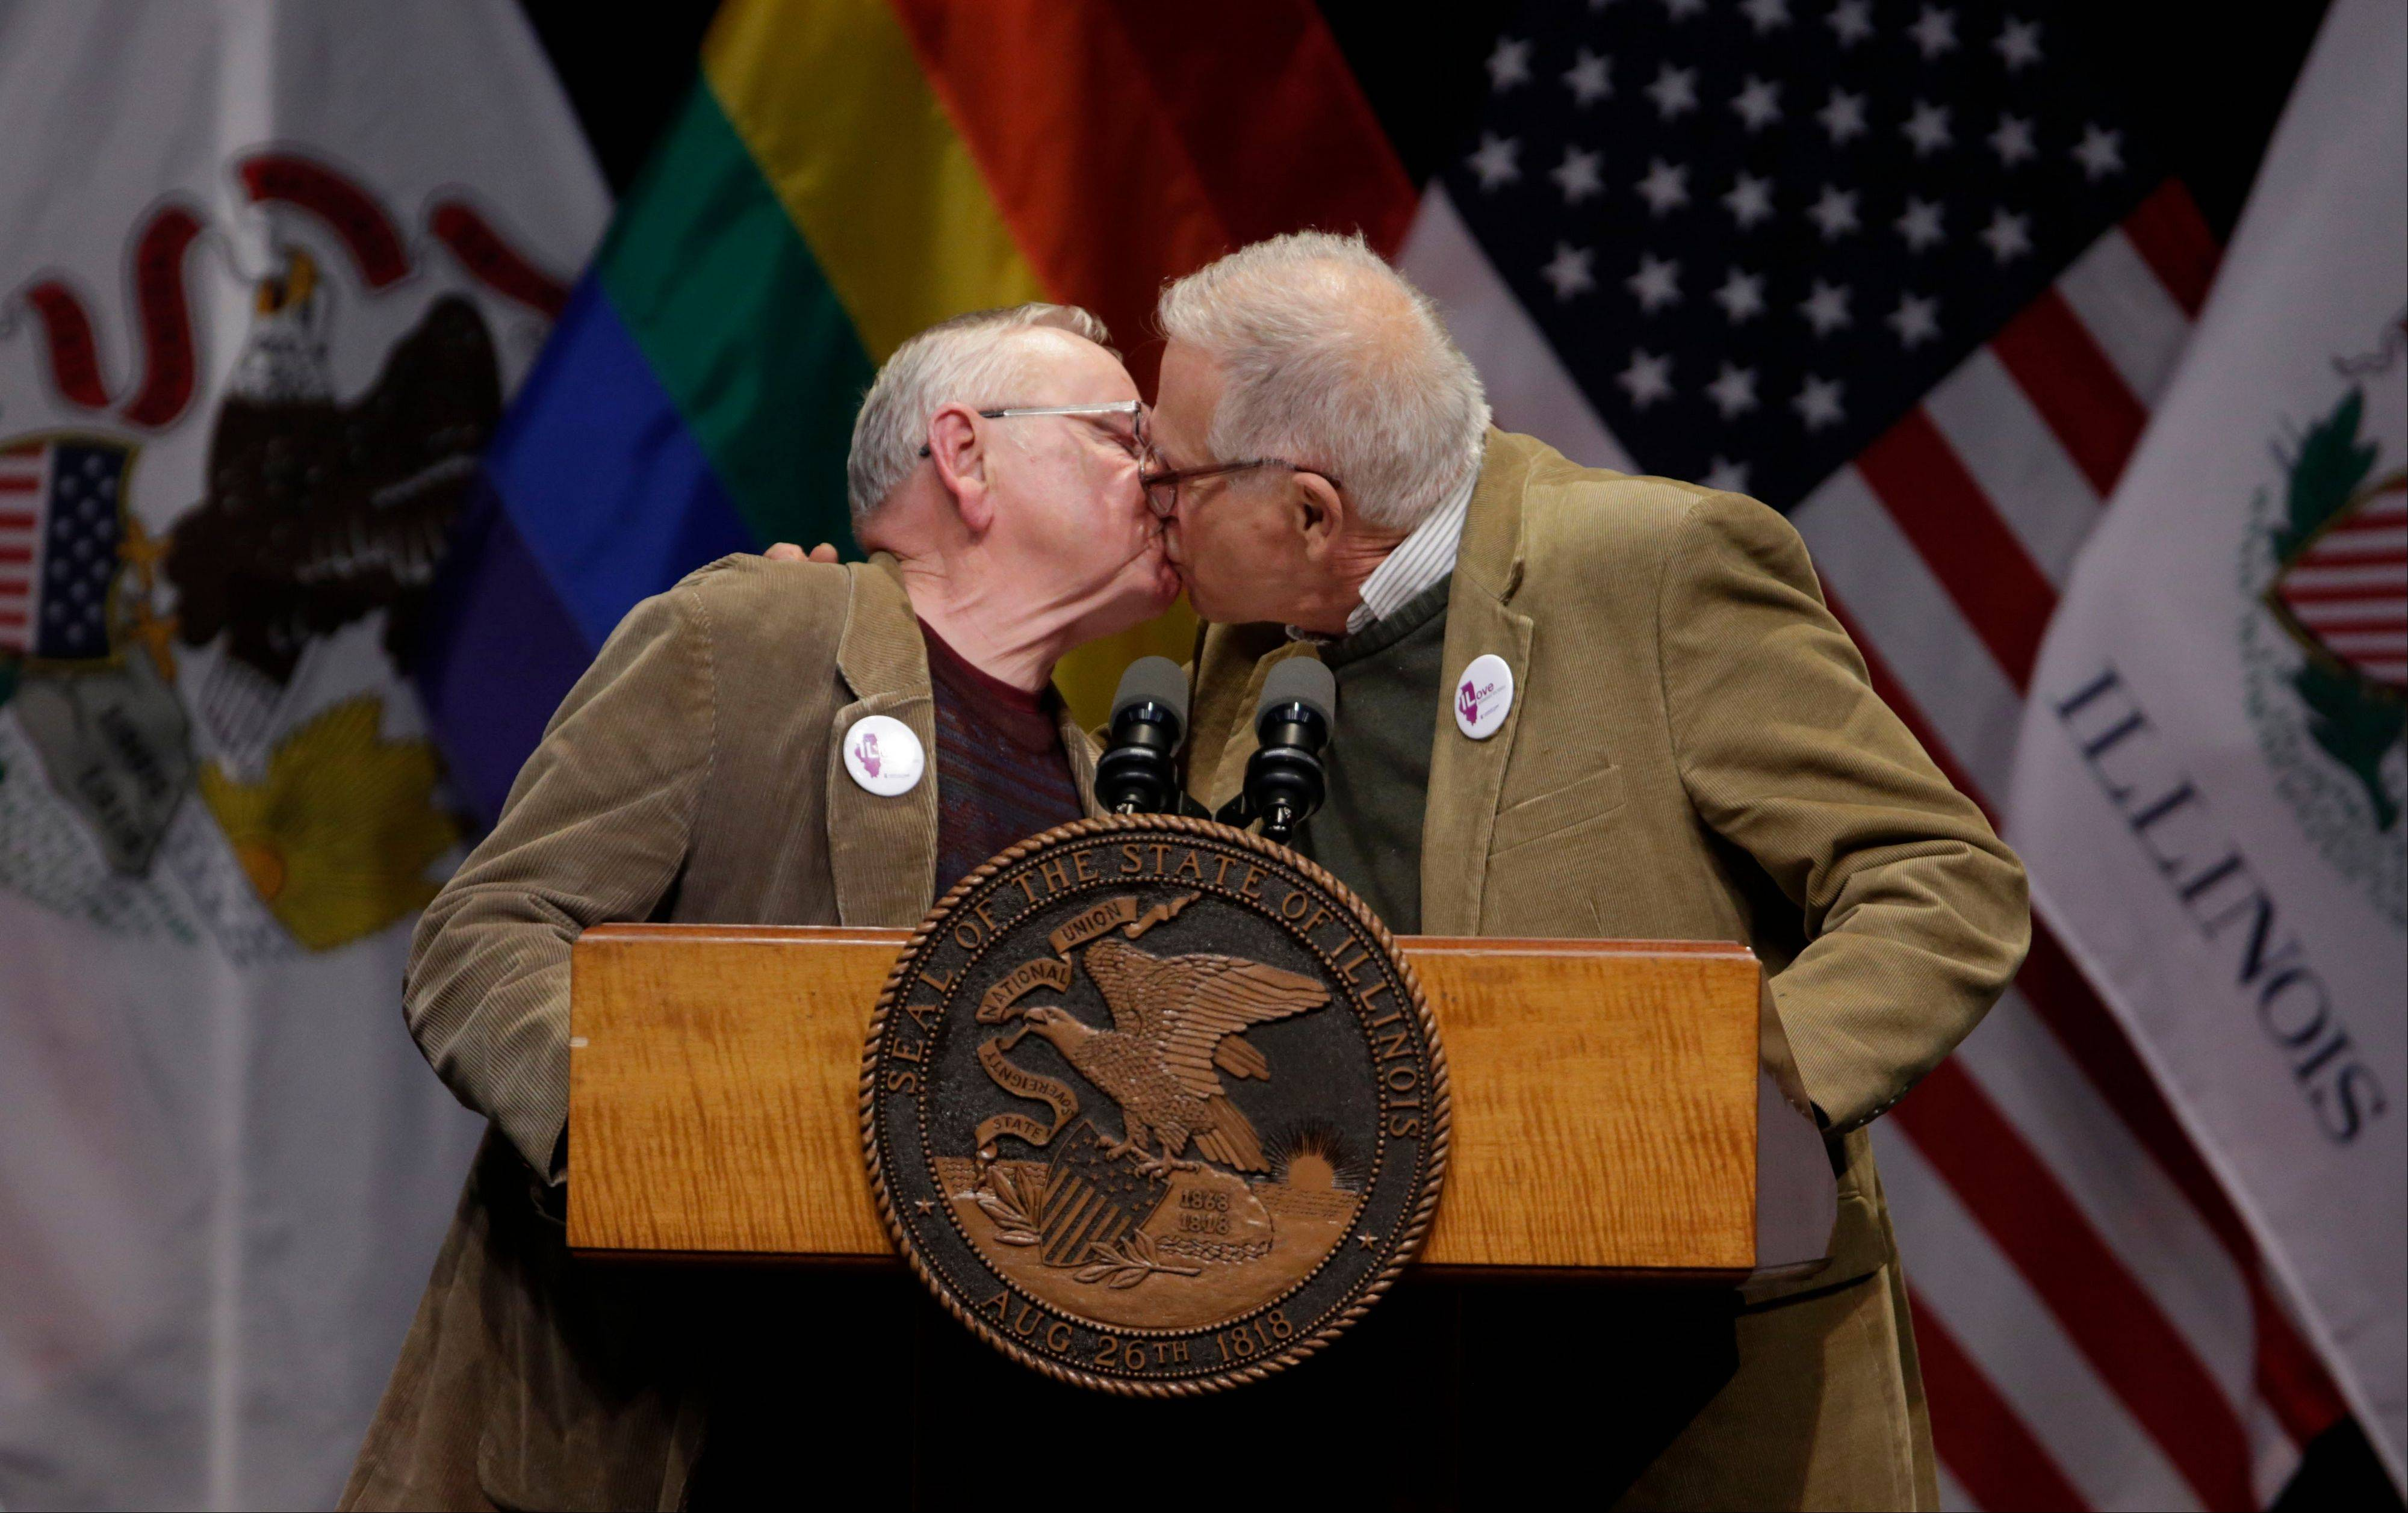 Lifelong partners Jim Darby, left, and Patrick Bova kiss before Illinois Gov. Pat Quinn signed the Religious Freedom and Marriage Fairness Act into law. Darby and Bova have been together for 50 years and now plan to marry in Illinois.